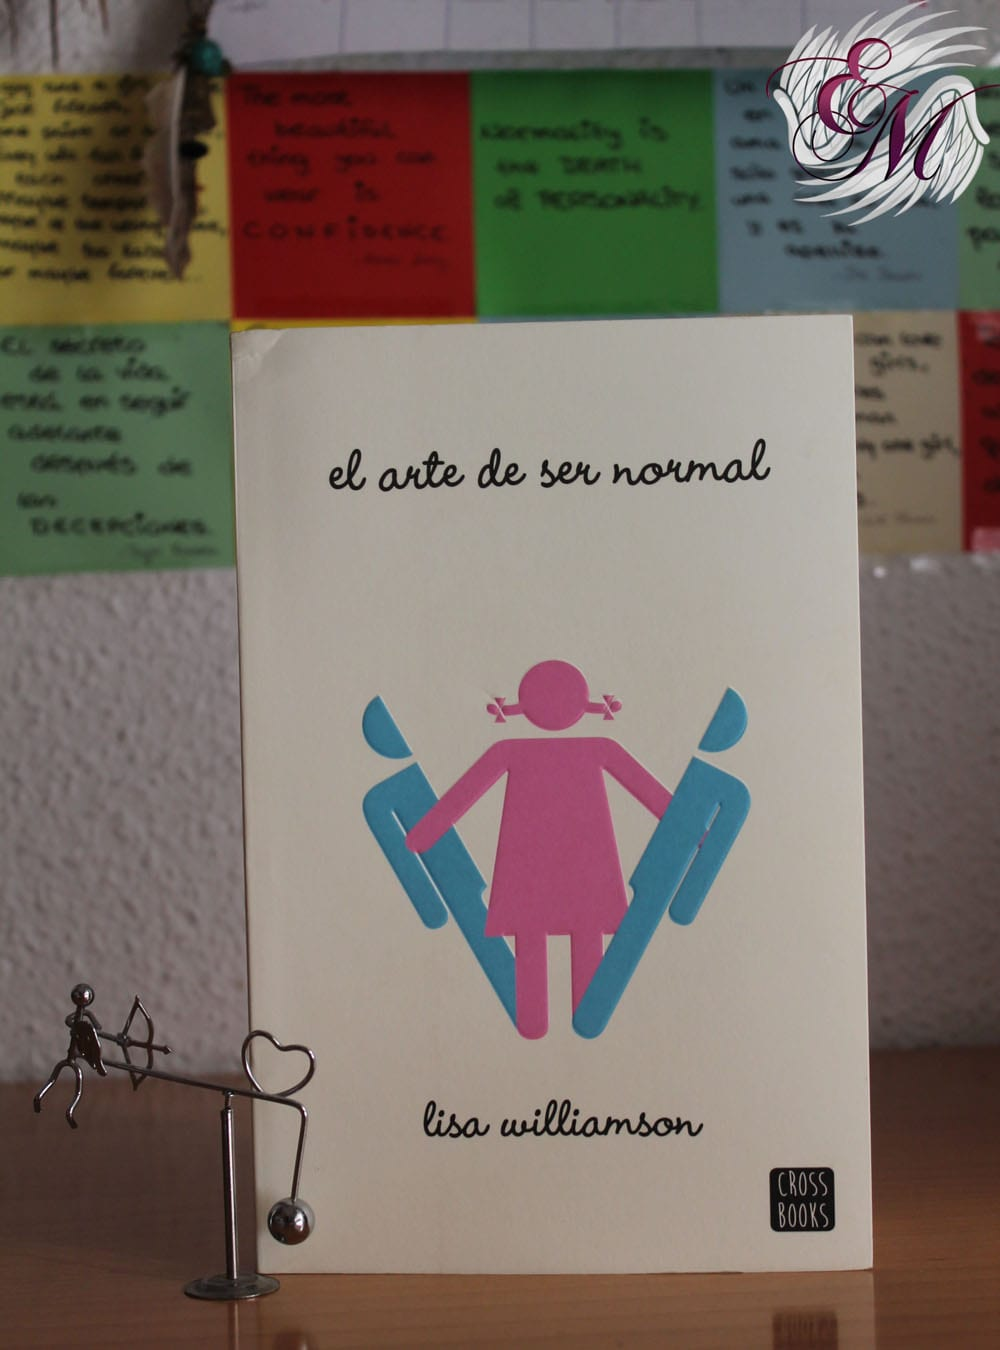 El arte de ser normal, Lisa Williamson - Reseña